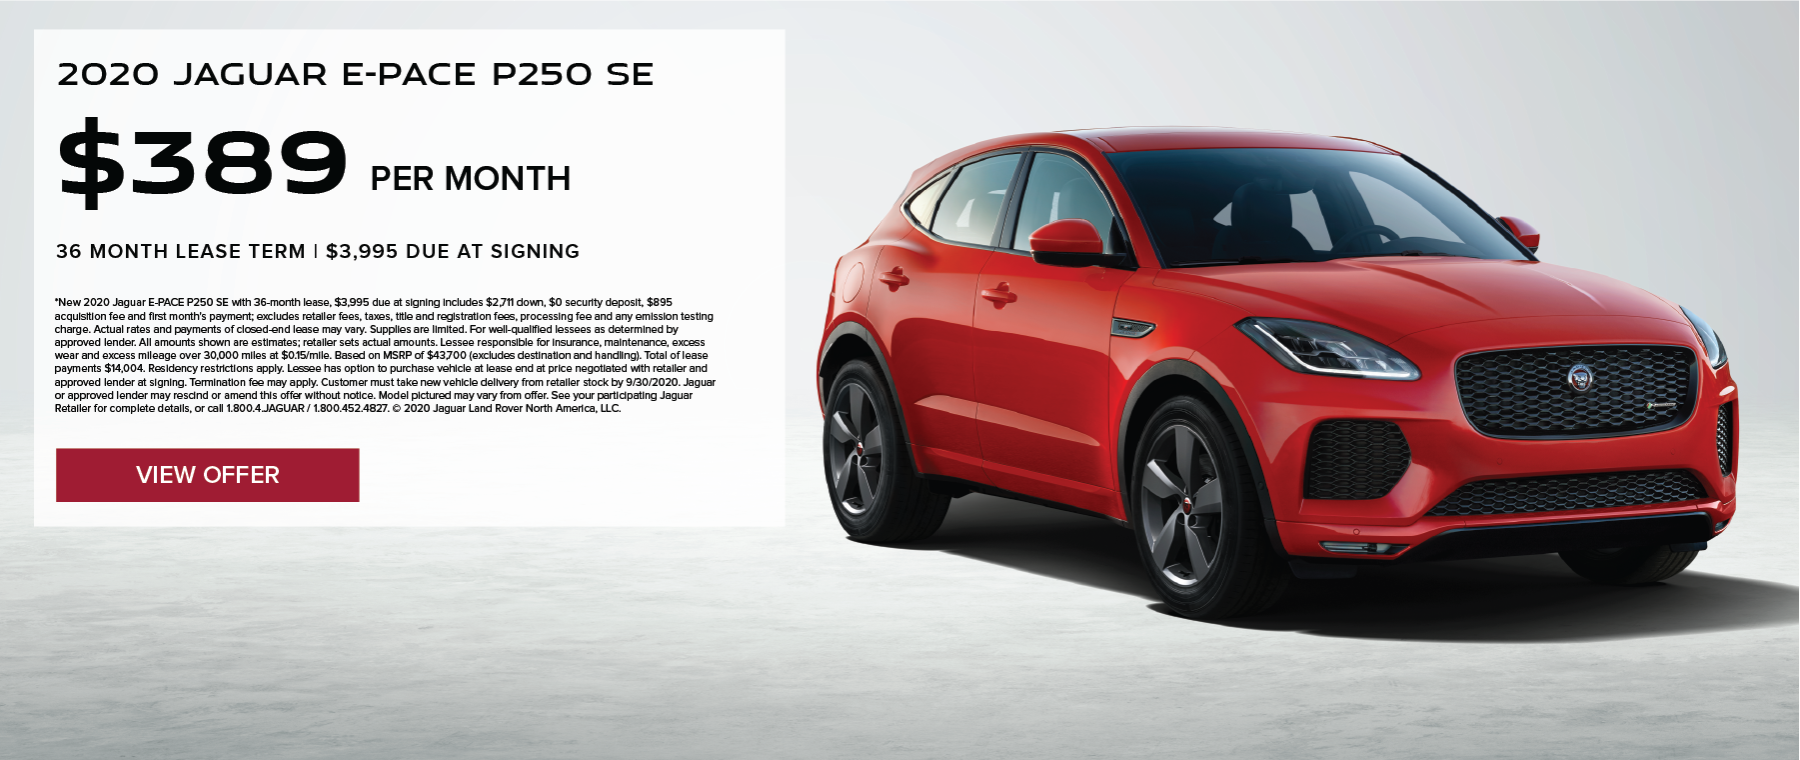 2020 JAGUAR E-PACE P250 SE. $389 PER MONTH. 36 MONTH LEASE TERM. $3,995 CASH DUE AT SIGNING. $0 SECURITY DEPOSIT. 10,000 MILES PER YEAR. EXCLUDES RETAILER FEES, TAXES, TITLE AND REGISTRATION FEES, PROCESSING FEE AND ANY EMISSION TESTING CHARGE. OFFER ENDS 9/30/2020.